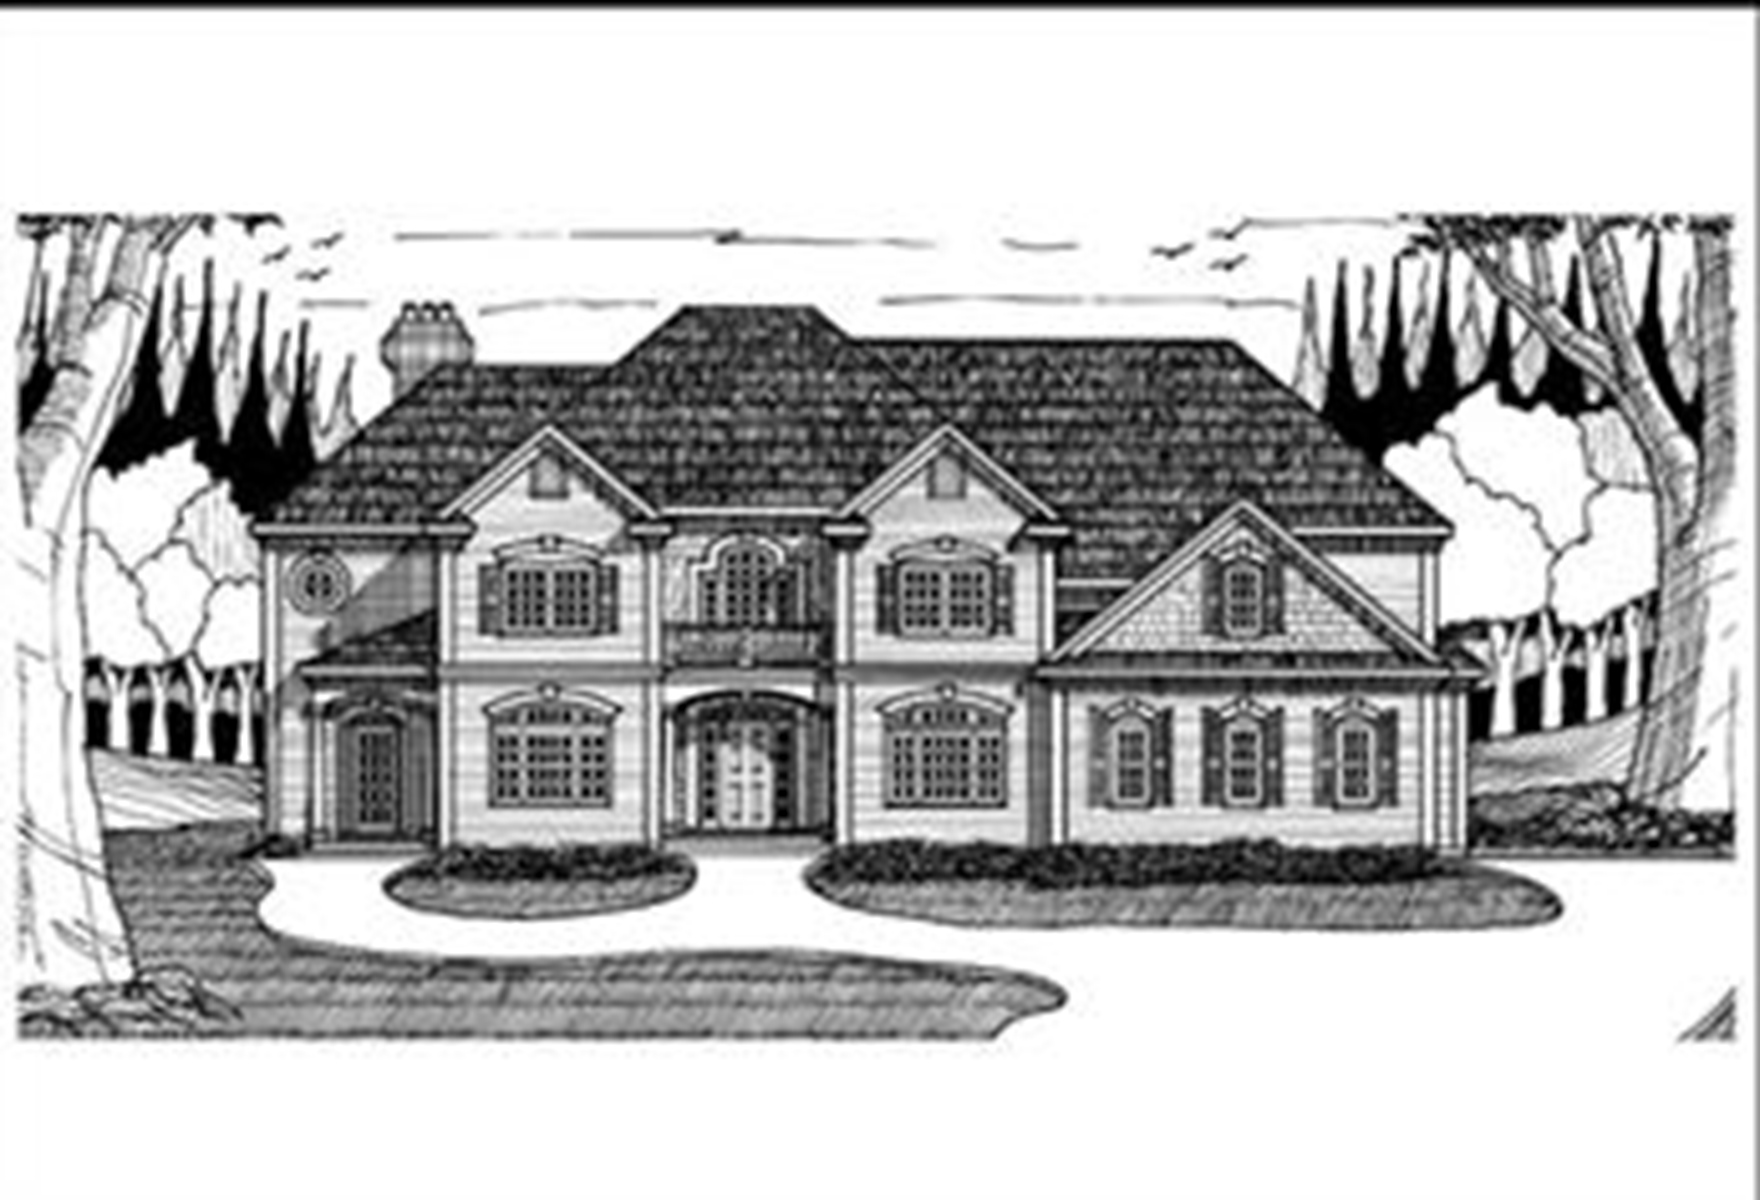 Single Family Home for Sale at Highland Park New Construction Harrison Model Lot 20 Stoney Brook Road Hopkinton, Massachusetts 01748 United States